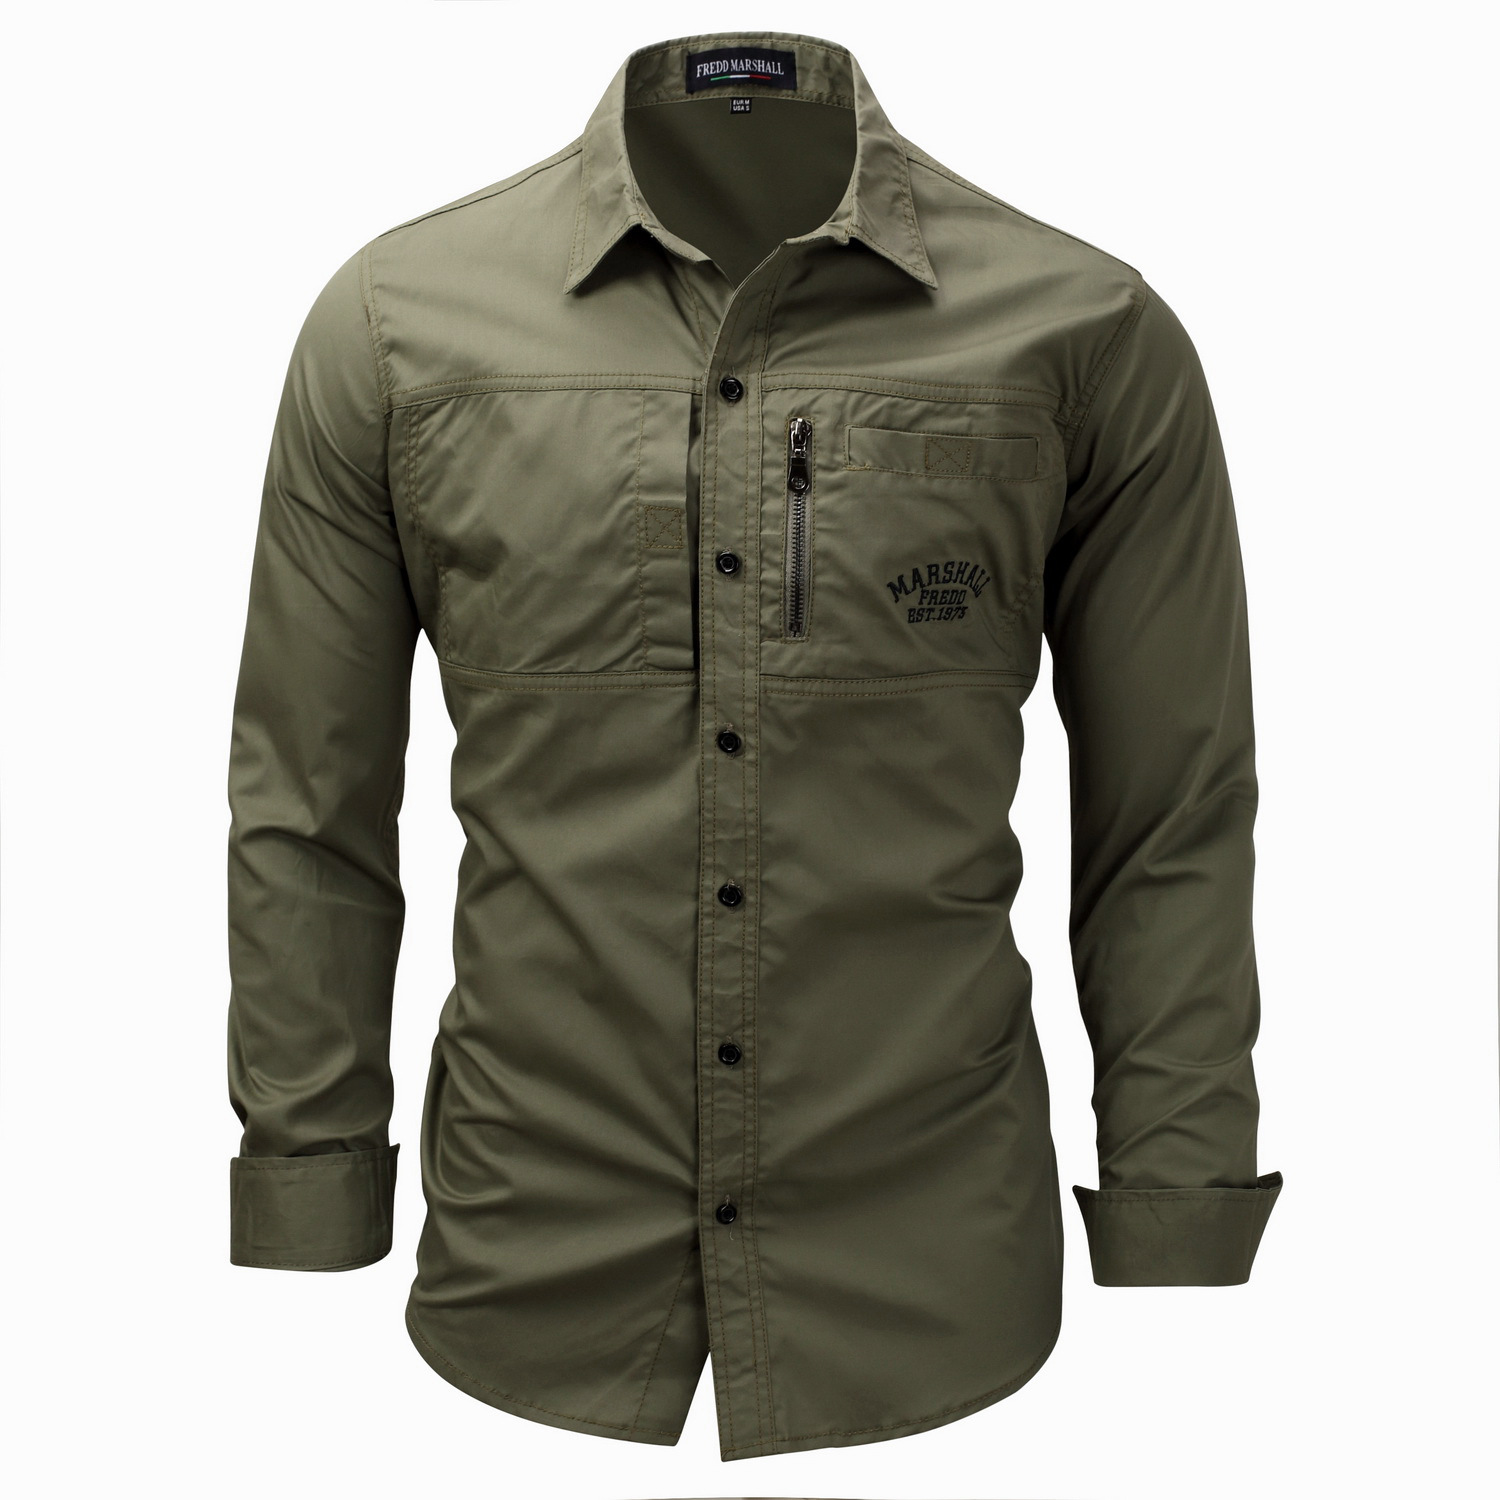 Man Tops Solid Shirts Male Wear Slim Full Sleeve Man Casual Shirts Pocket Mens Office Wearing Smart Casual Shirts Basic Style